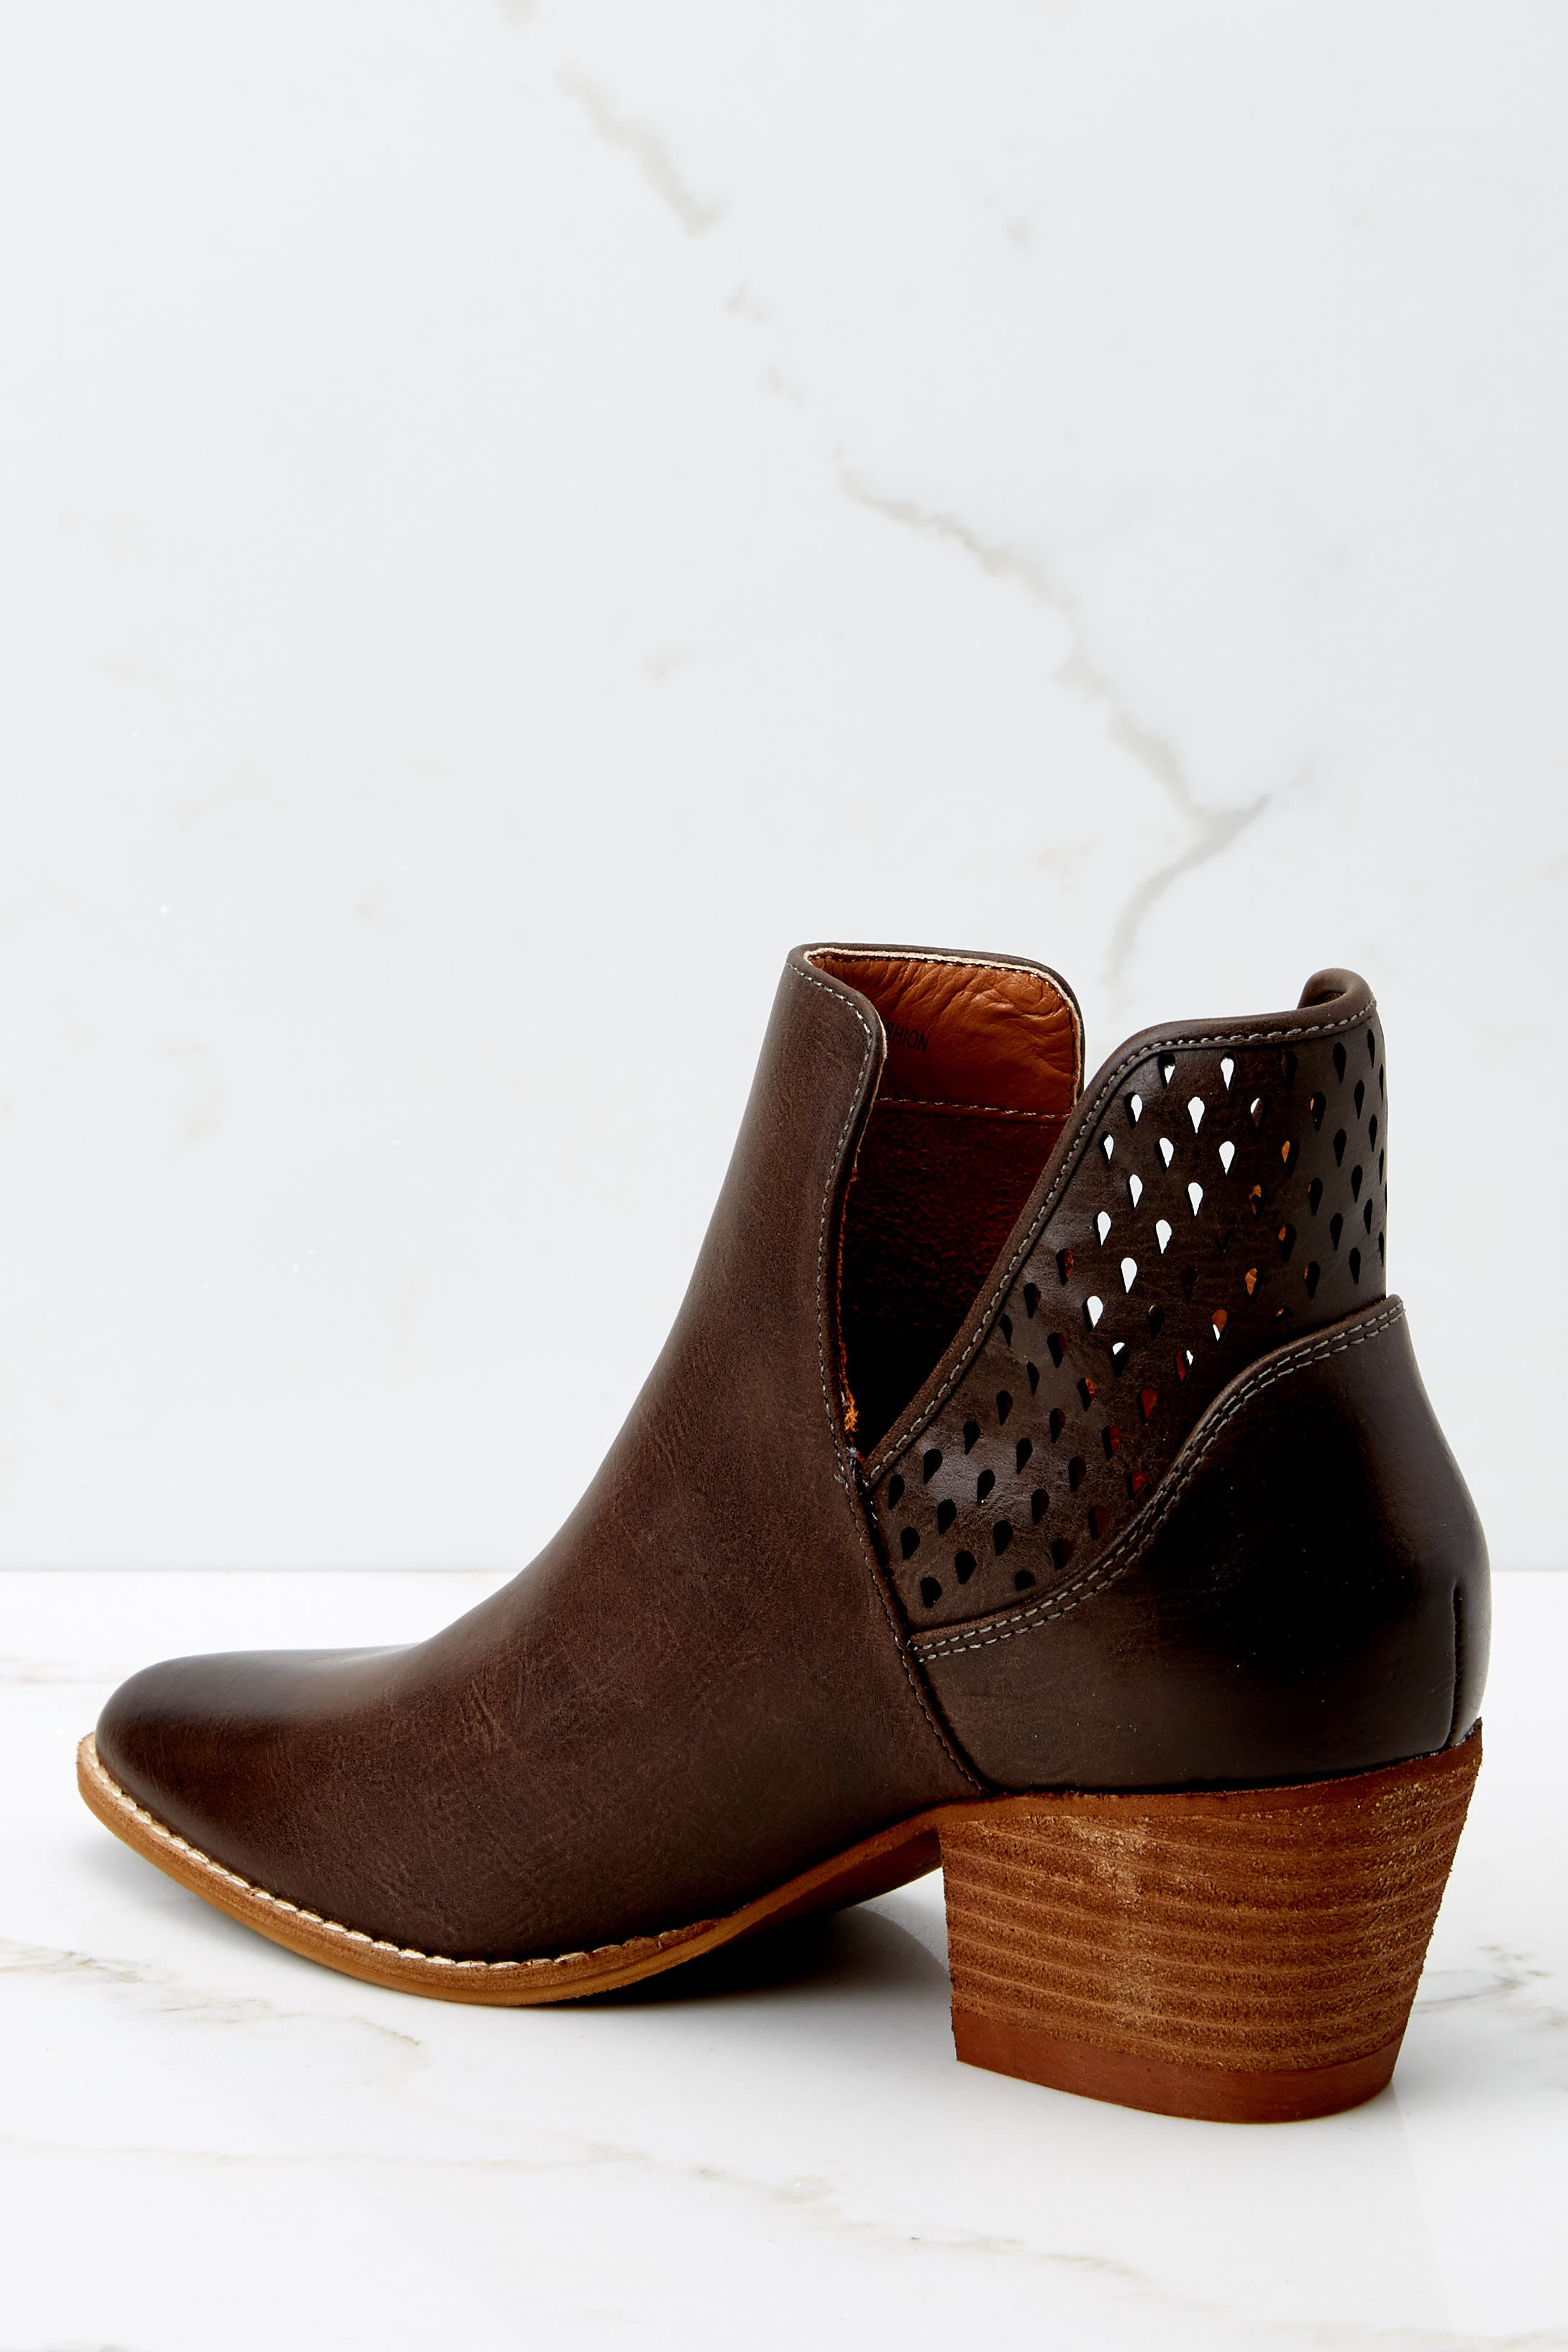 4 All In Favor Dark Brown Ankle Booties at reddressboutique.com